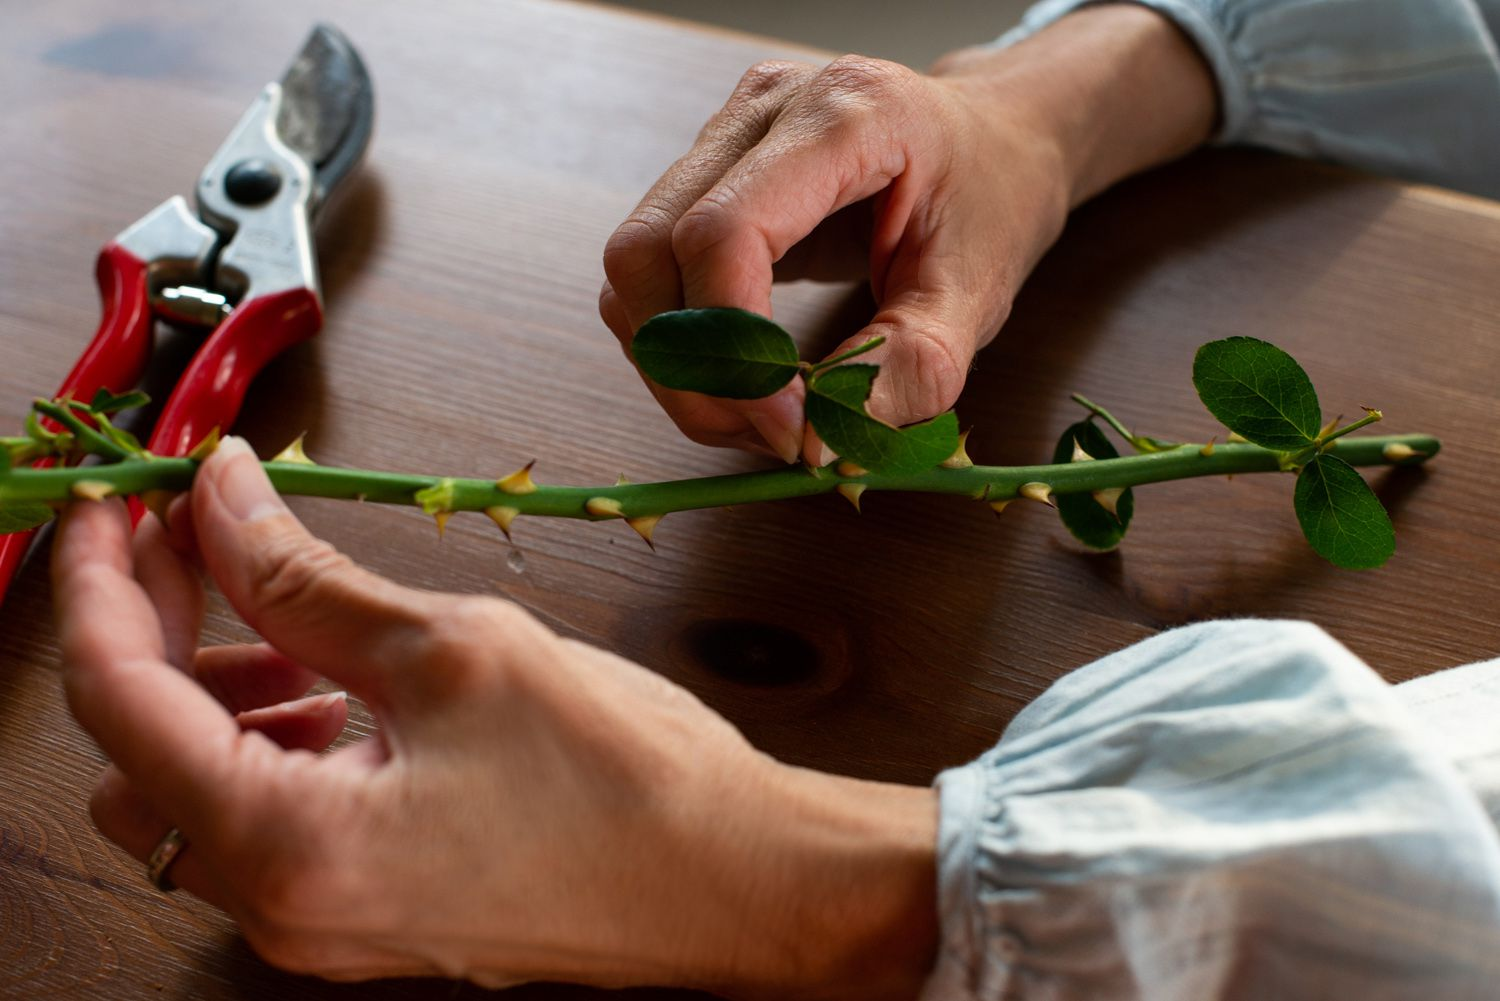 Removing leaves from a rose stem